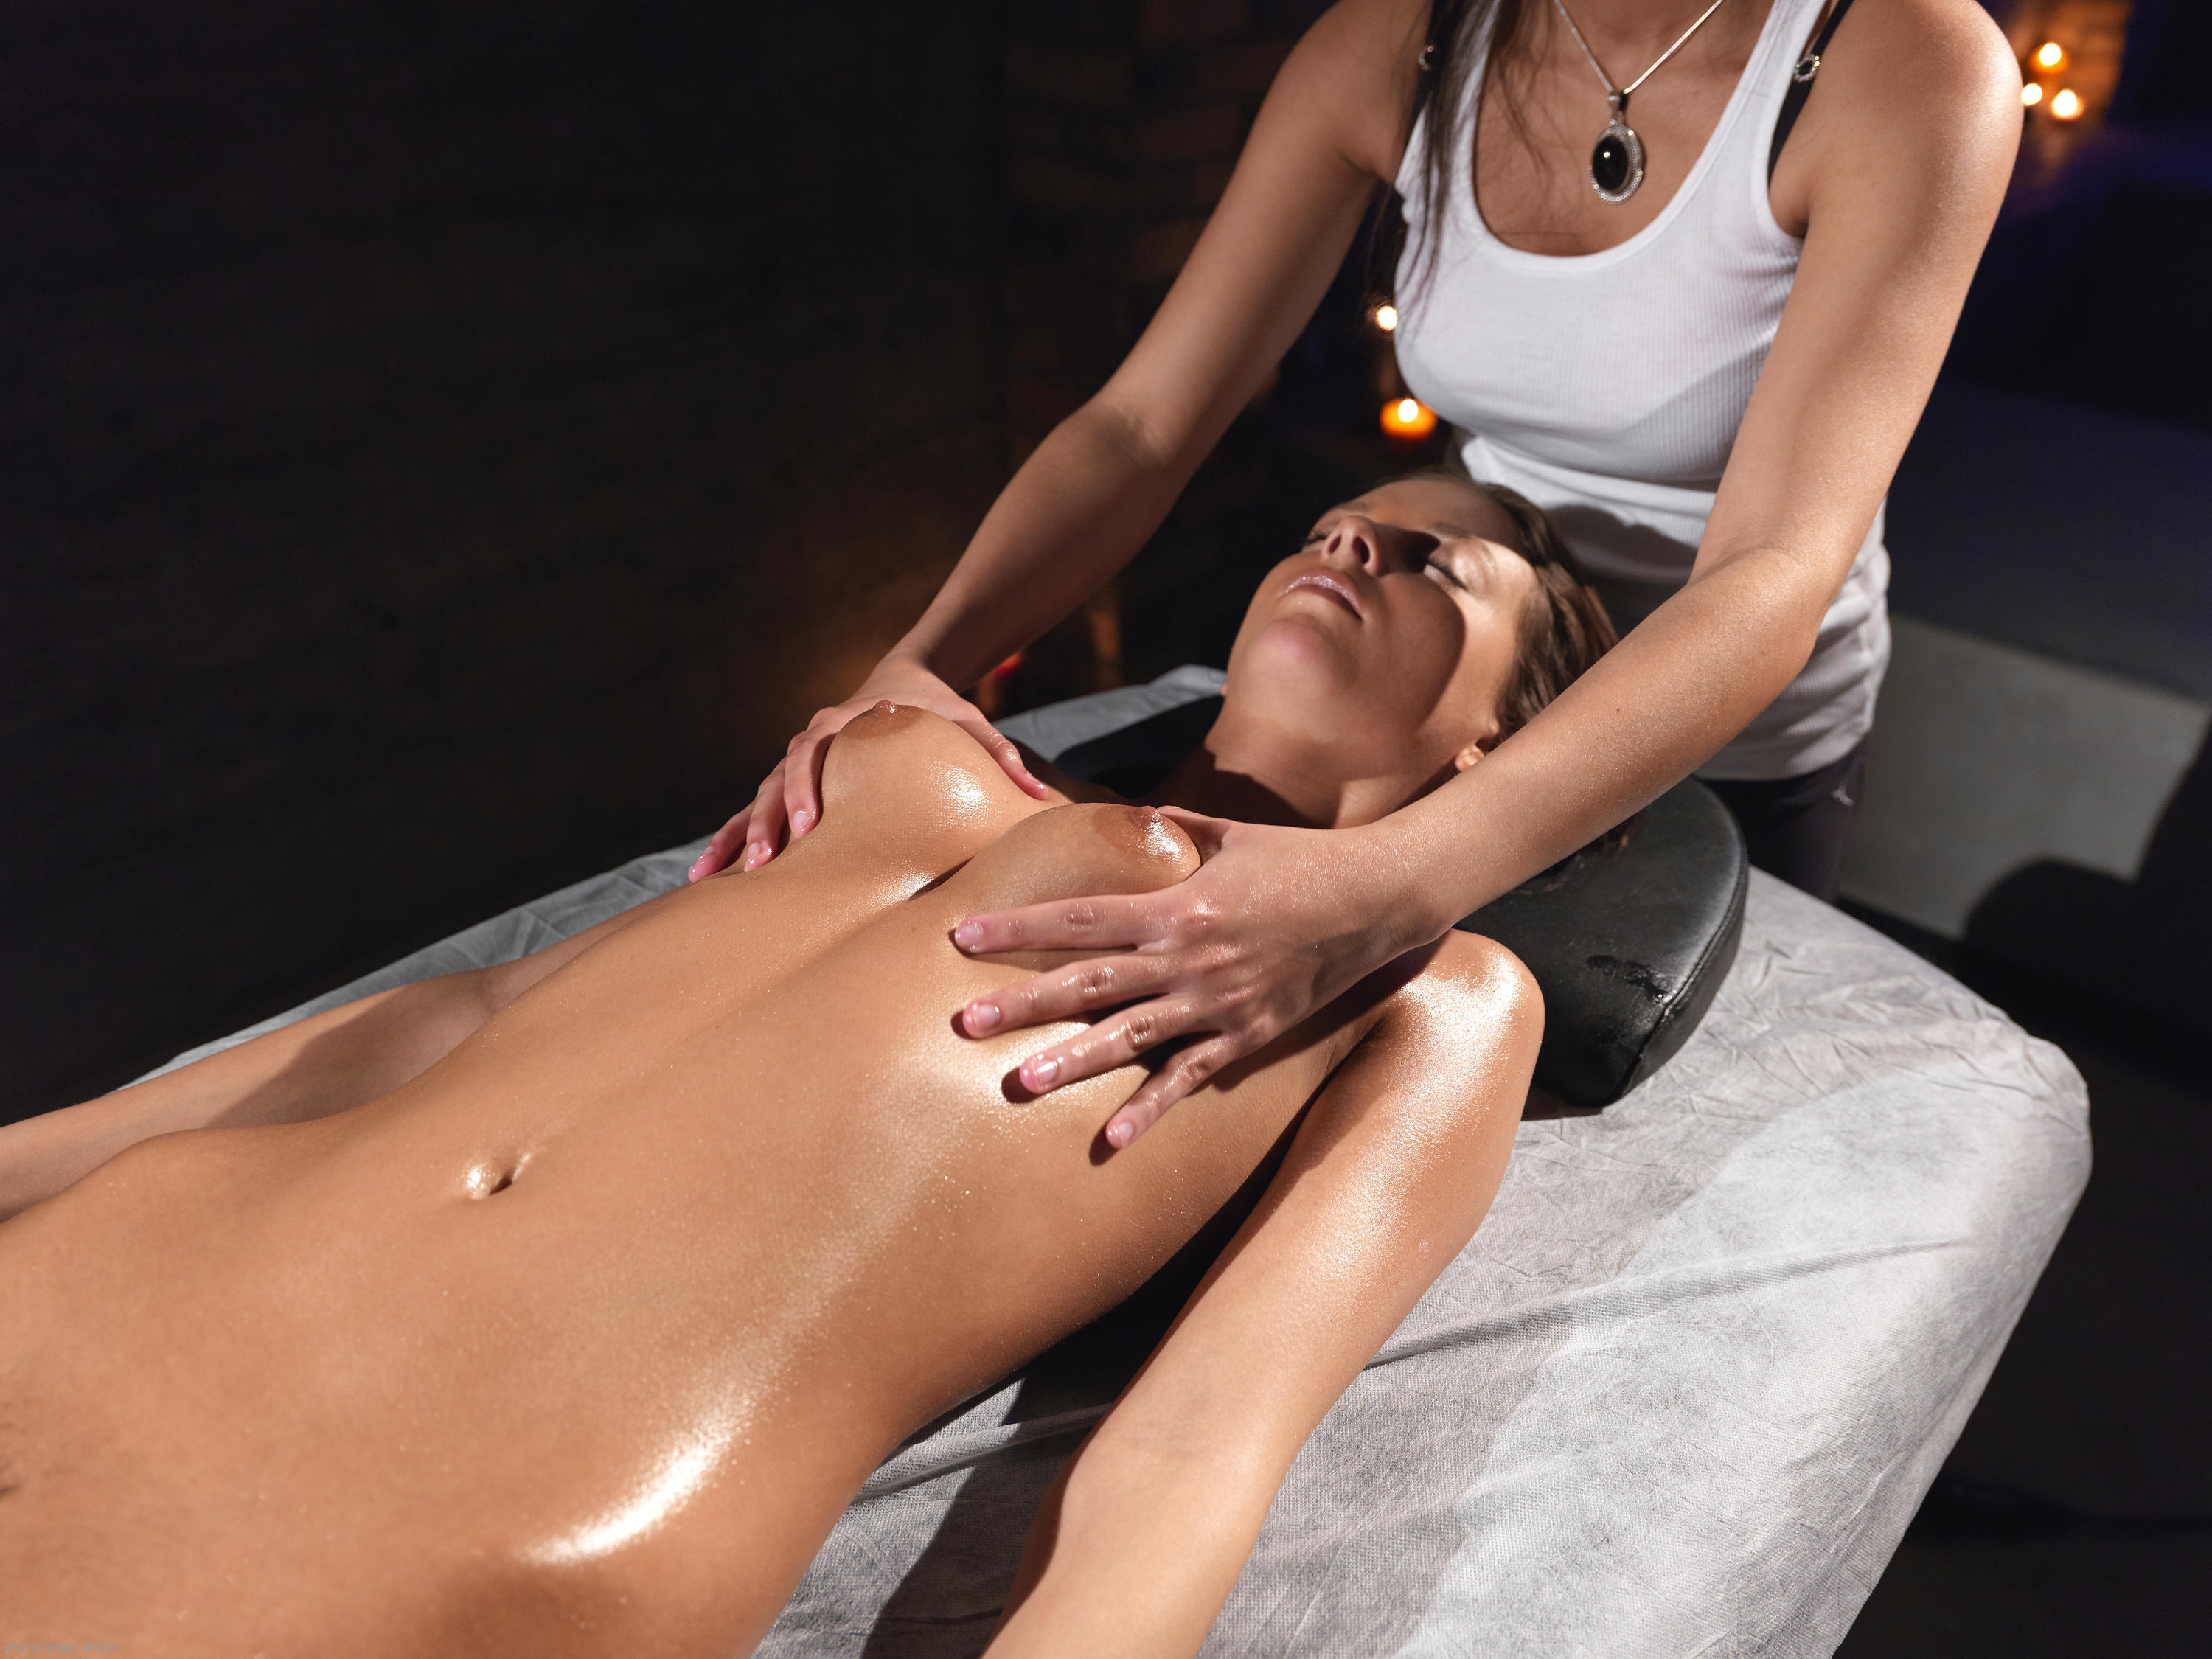 Erotic massage parlors in guelph erotic massage canada